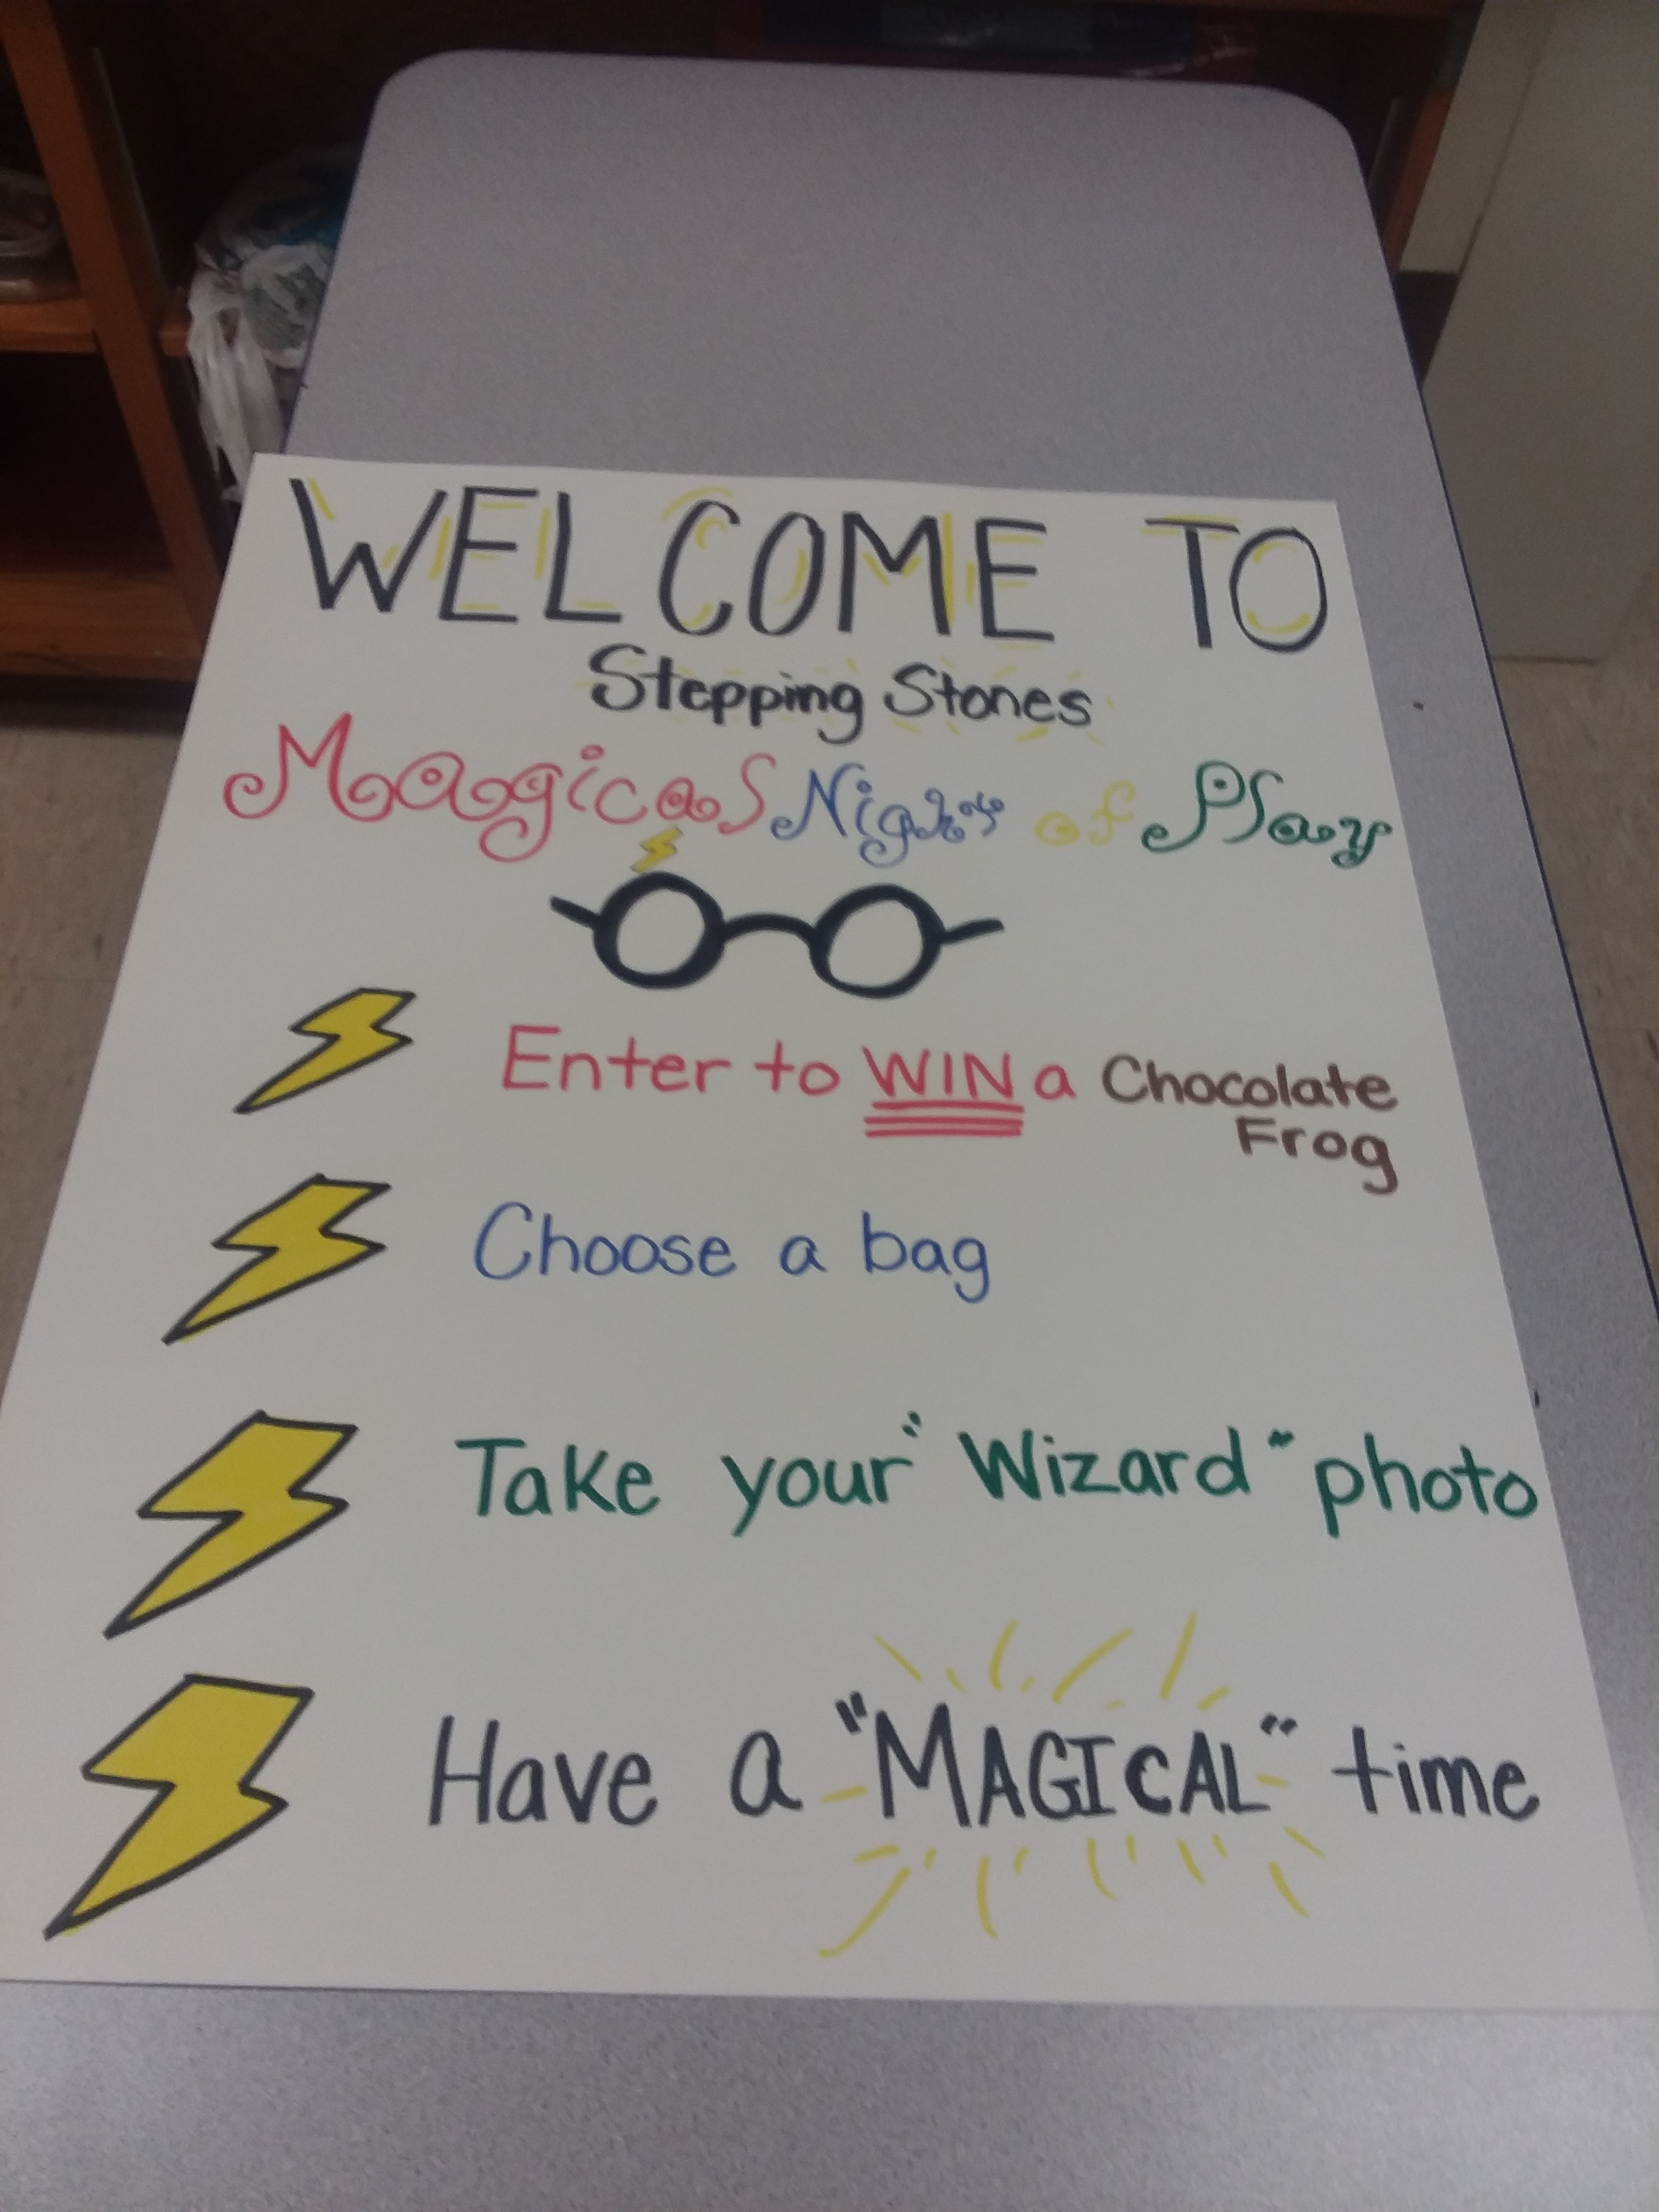 Stepping Stones - Magic Night of Play Wednesday March 13, 2019